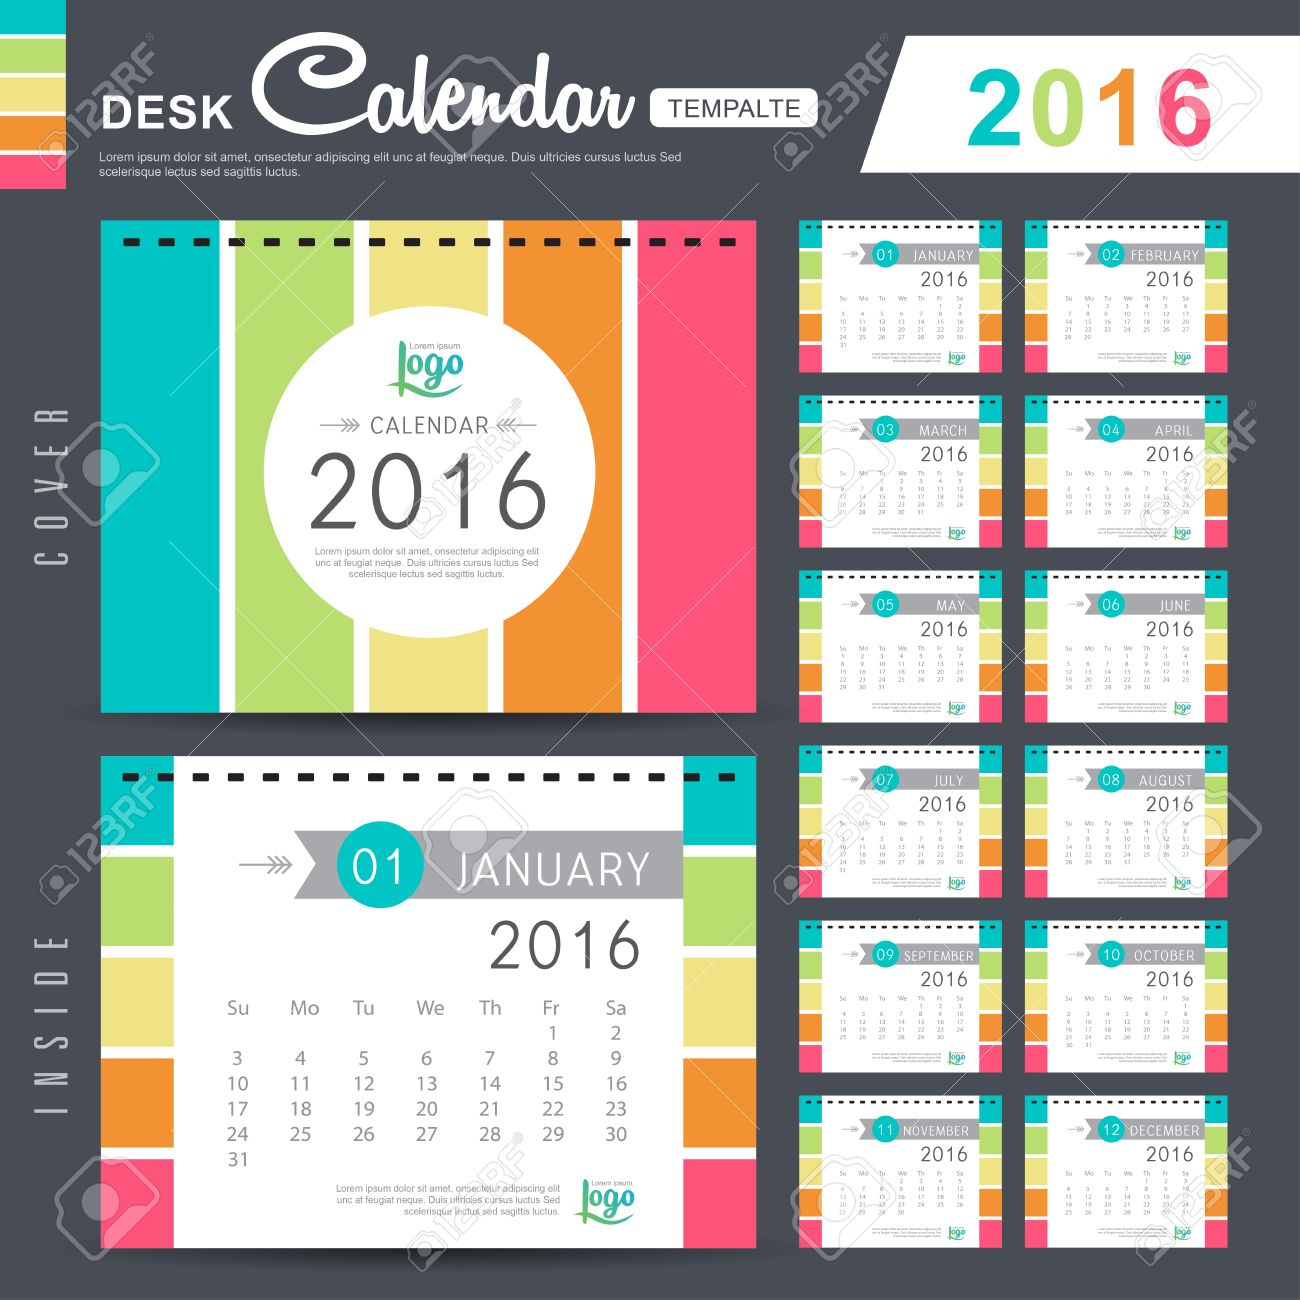 desk calendar 2016 vector design template with abstract pattern